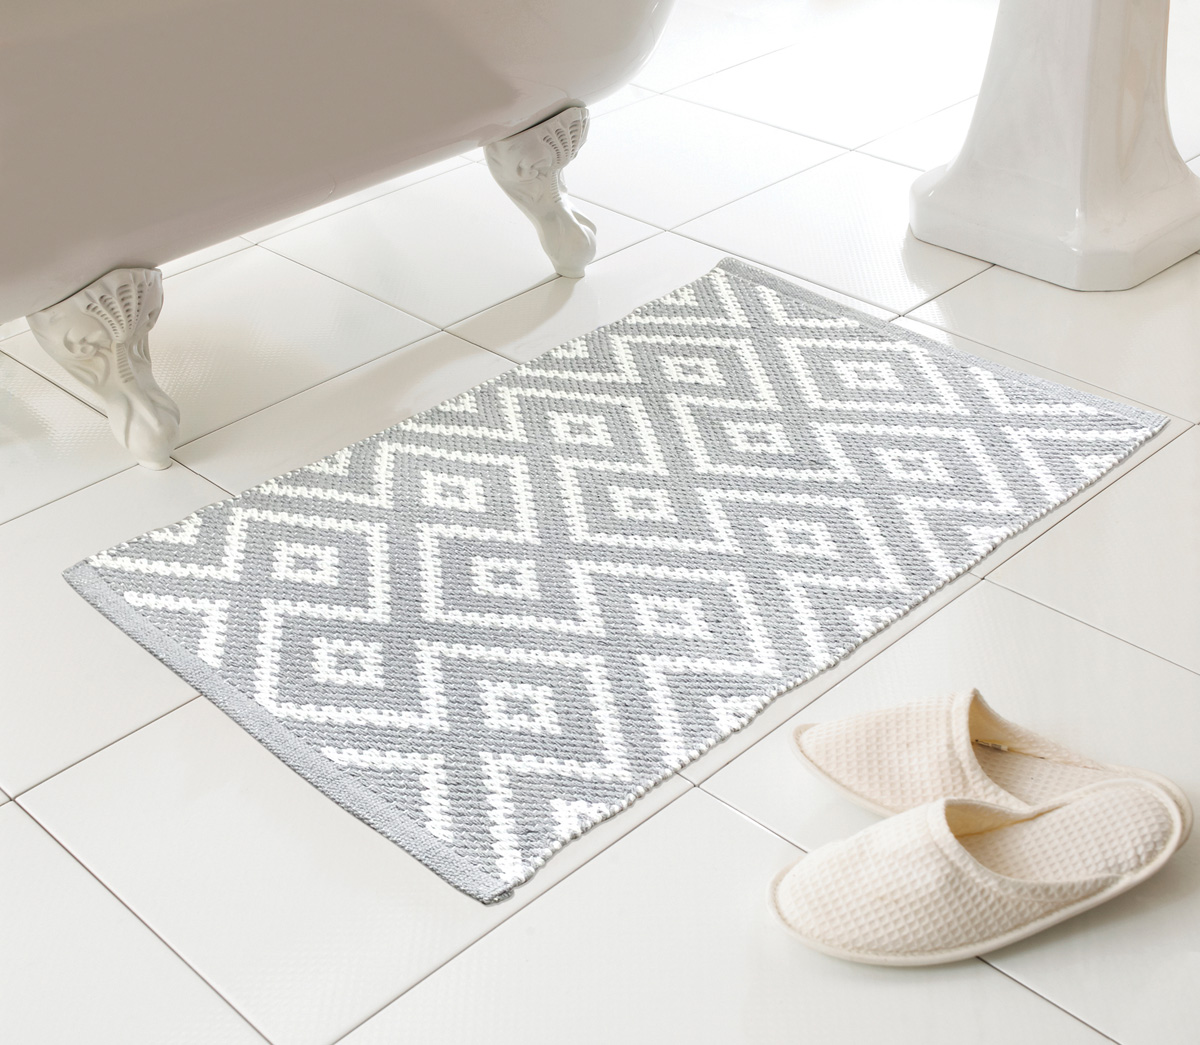 Natural Bathroom Soft Woven Non Slip Patterned Country Club Kina Bath Mat